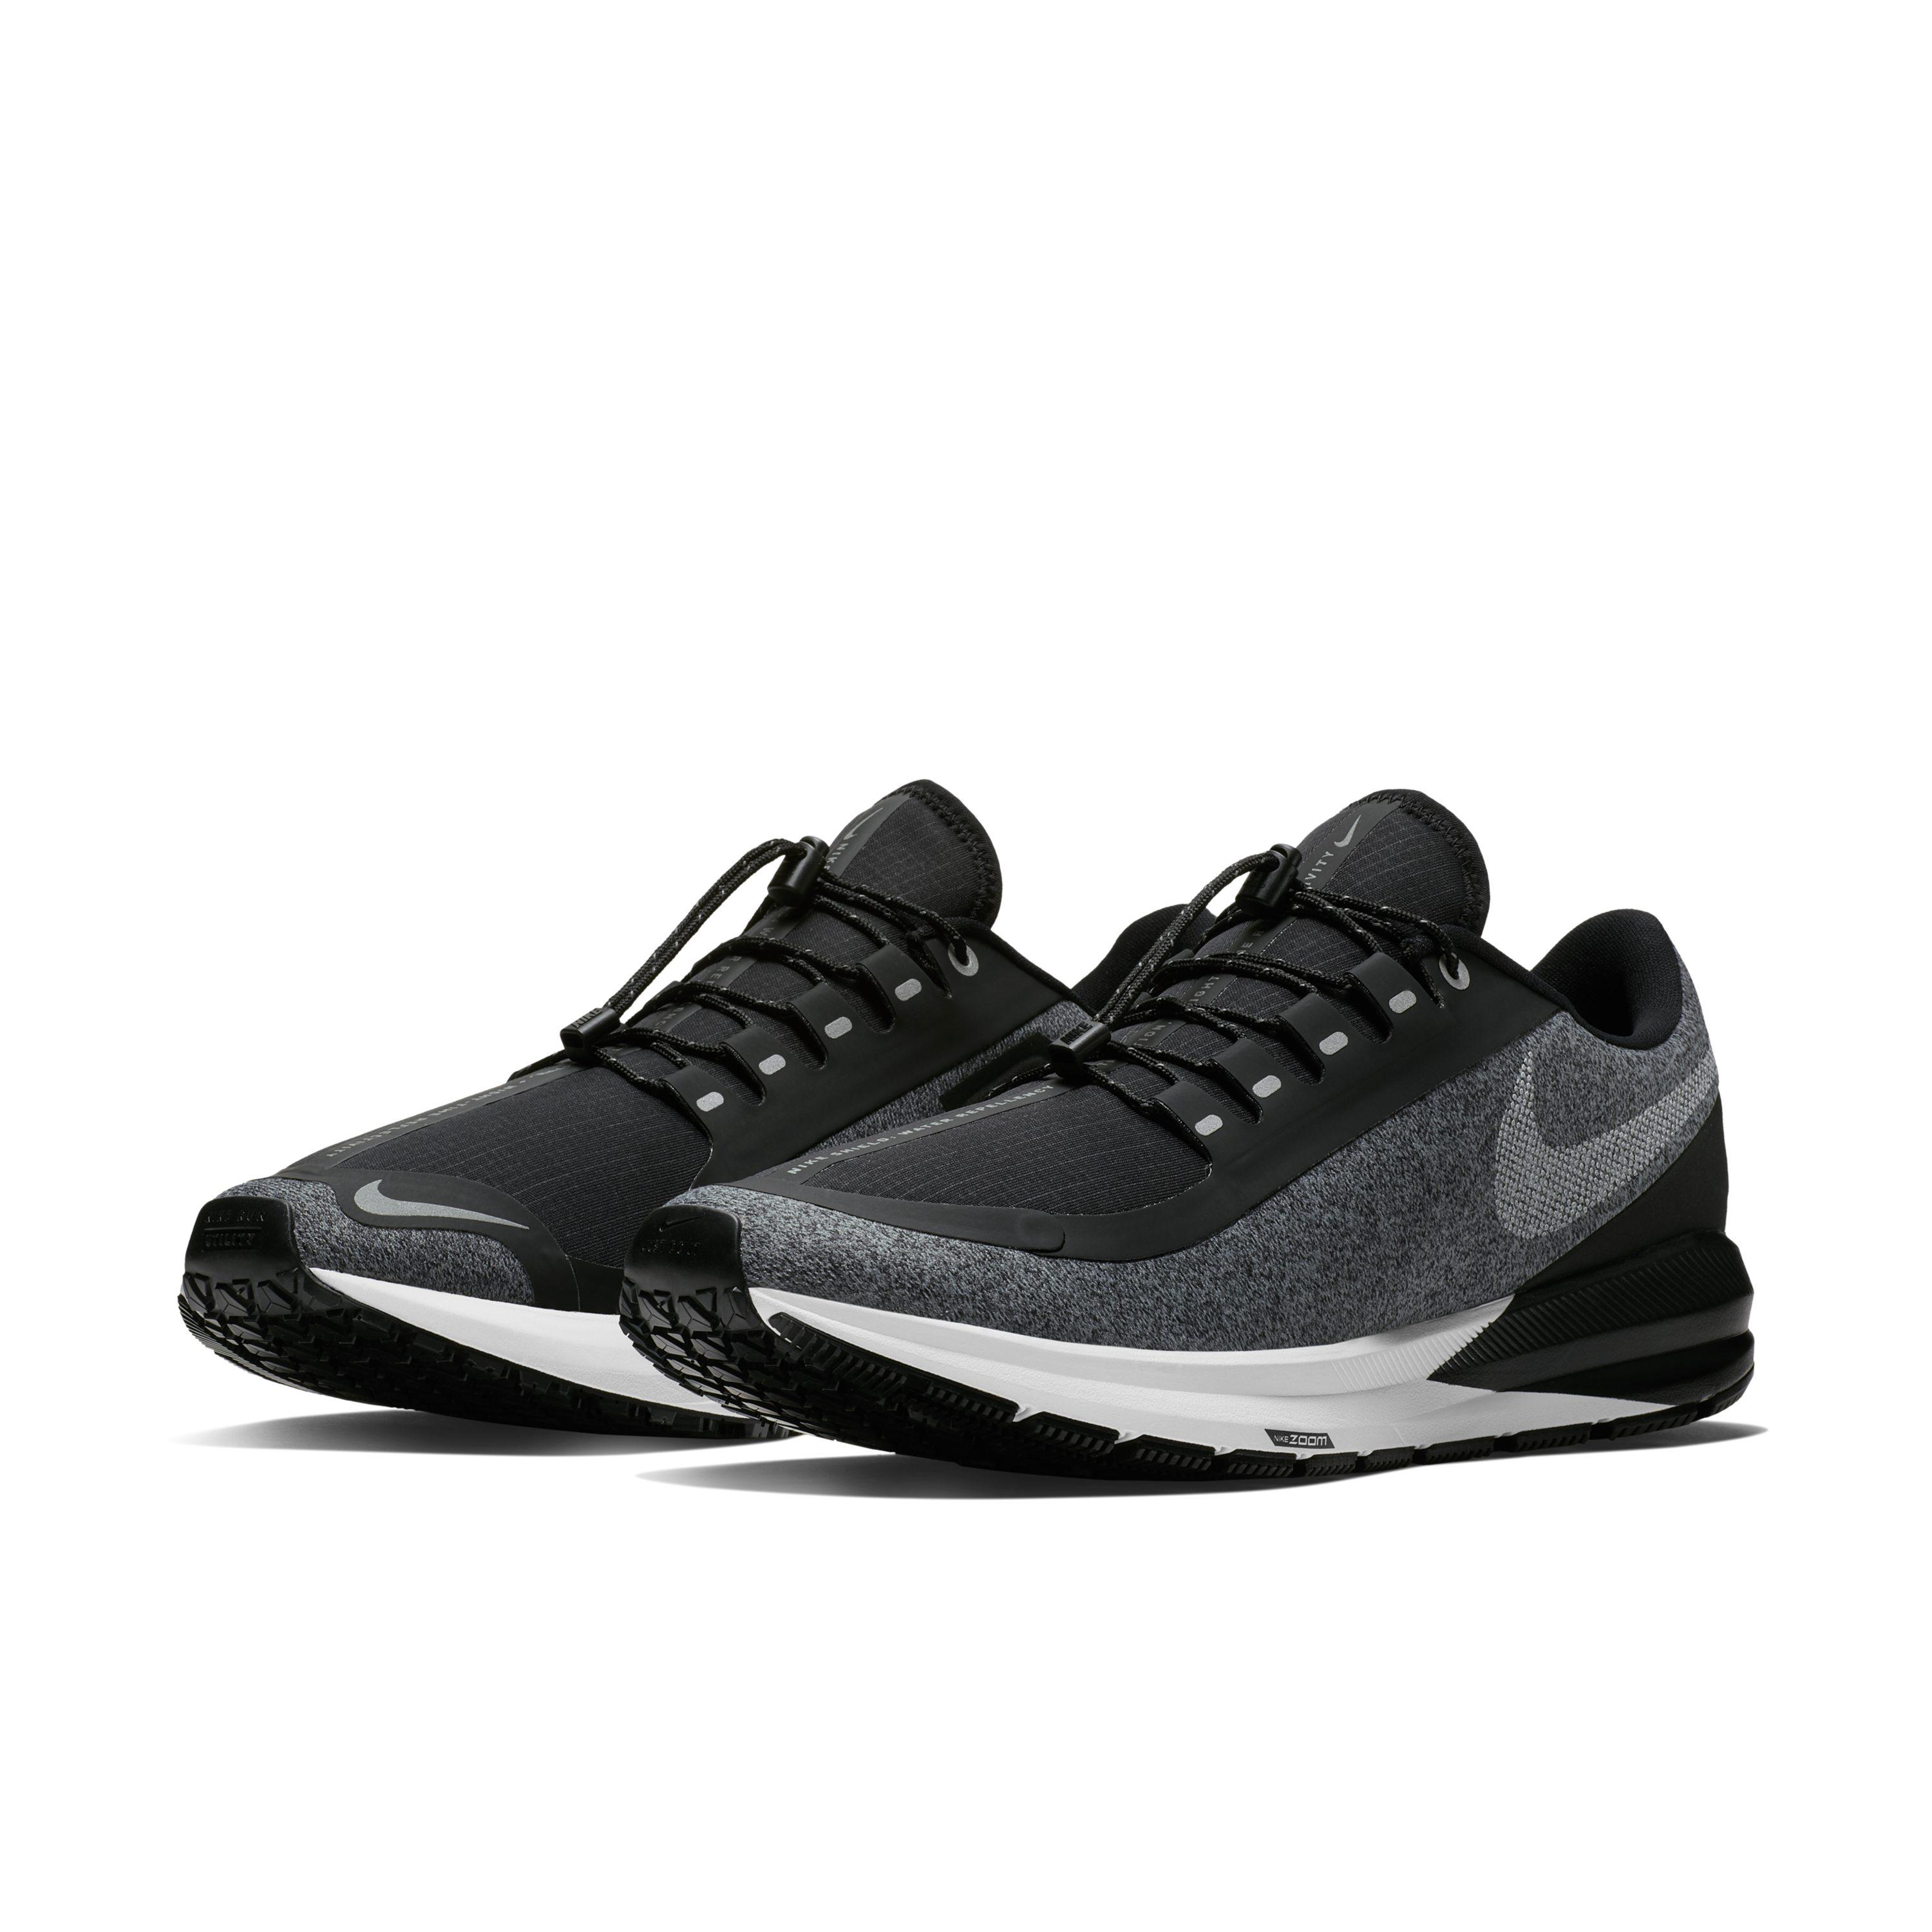 2d421c0744c0e Nike - Black Air Zoom Structure 22 Shield Water-repellent Running Shoe for  Men -. View fullscreen